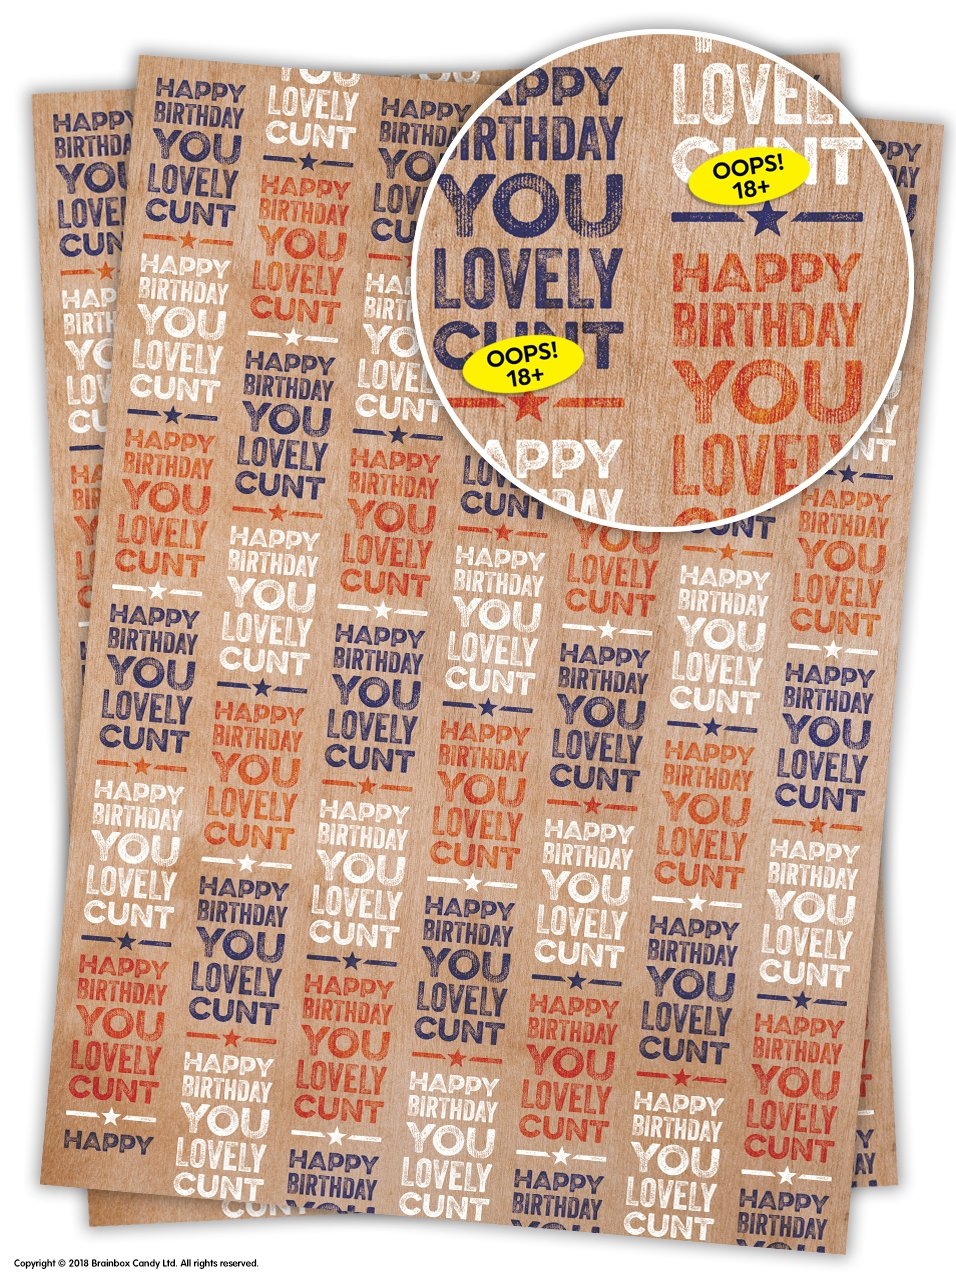 Funny Rude offensiva lovely C NT Birthday Gift Wrap 2 Sheets